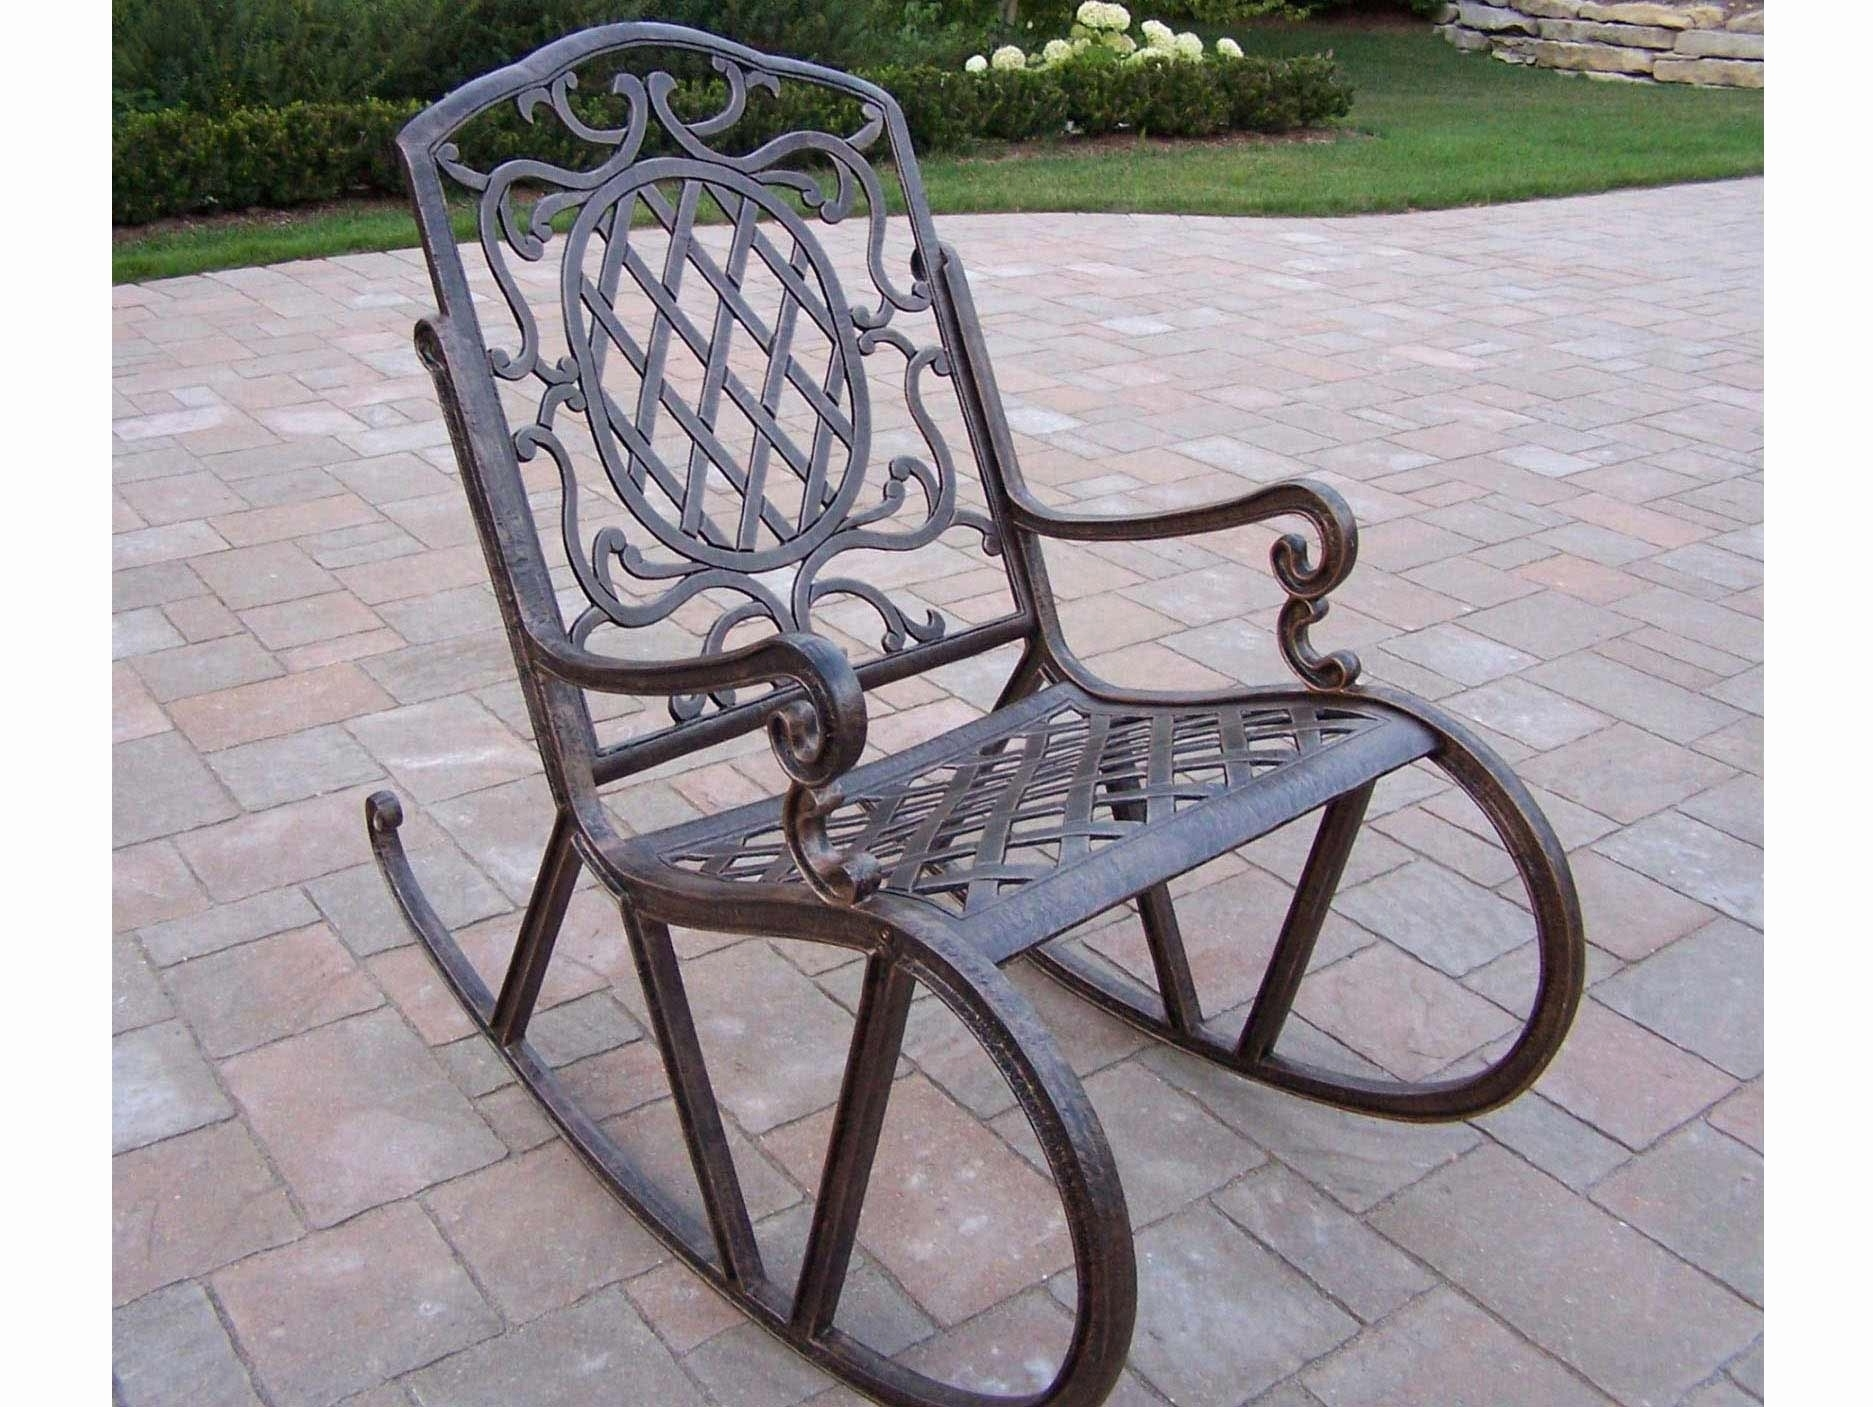 Wrought Iron Patio Furniture Rocking Chairs Ideas Antique Vintage In Vintage Outdoor Rocking Chairs (View 14 of 15)